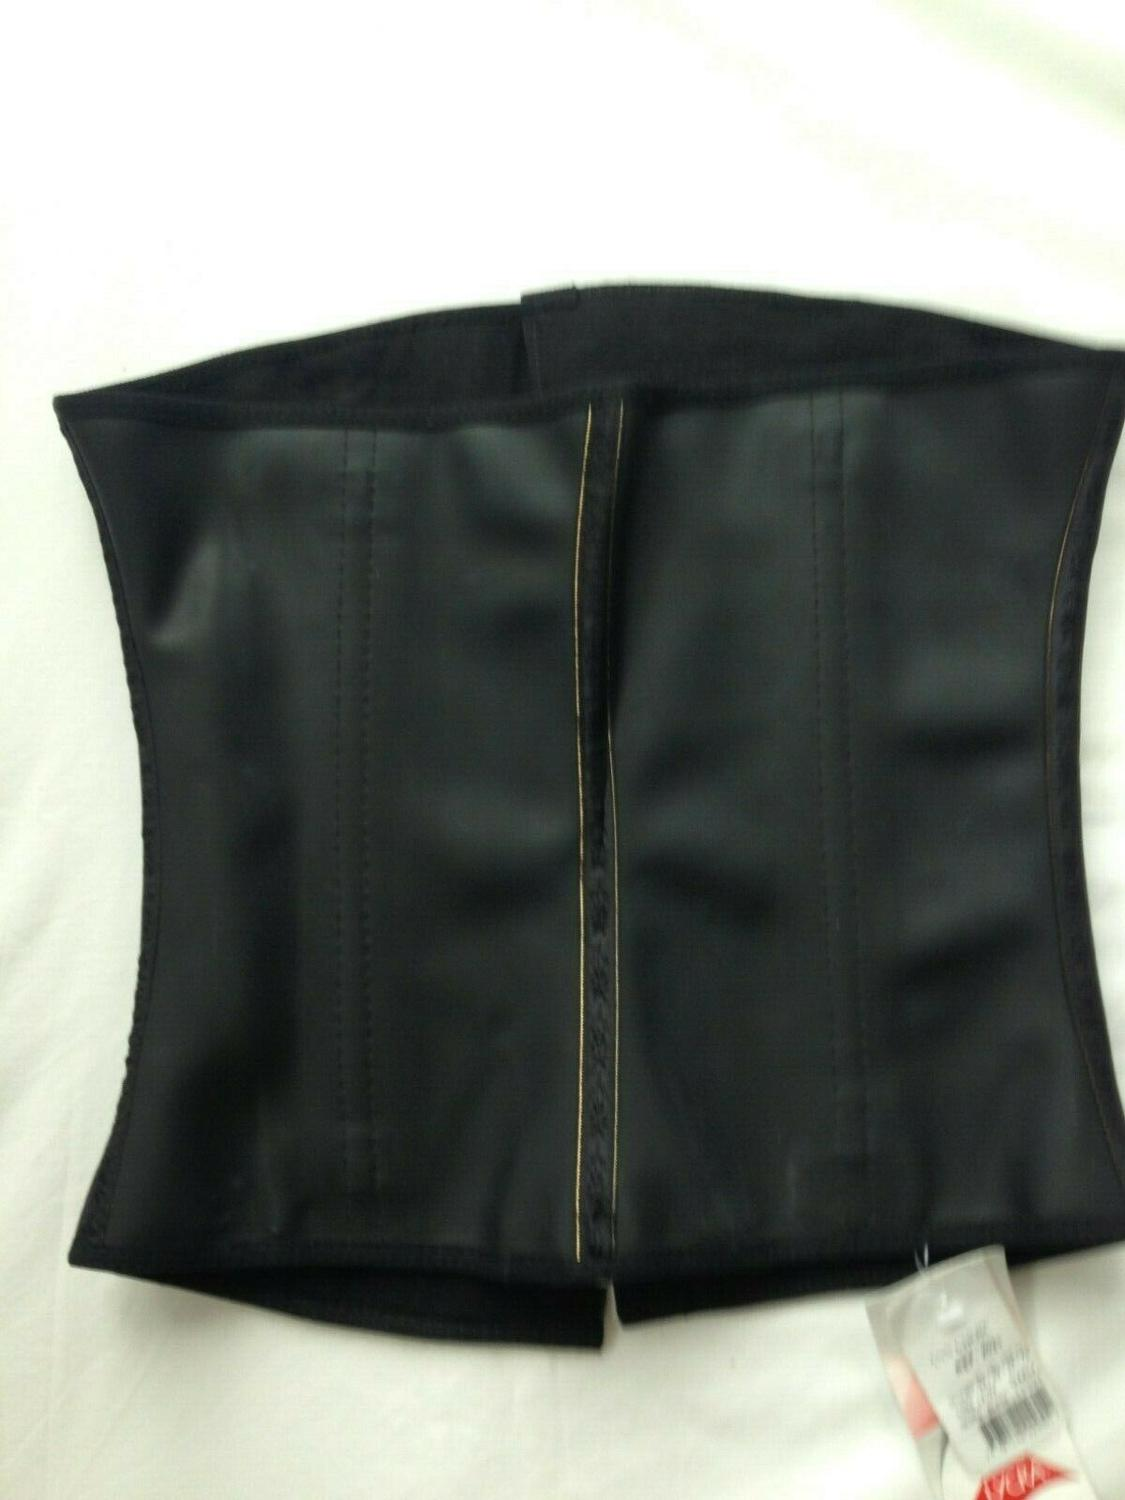 Chaud!! Ann Chery 2025 taille Shaper ~ Latex taille formation Corsets en gros ~ taille Shaper ~ taille formateur - 4